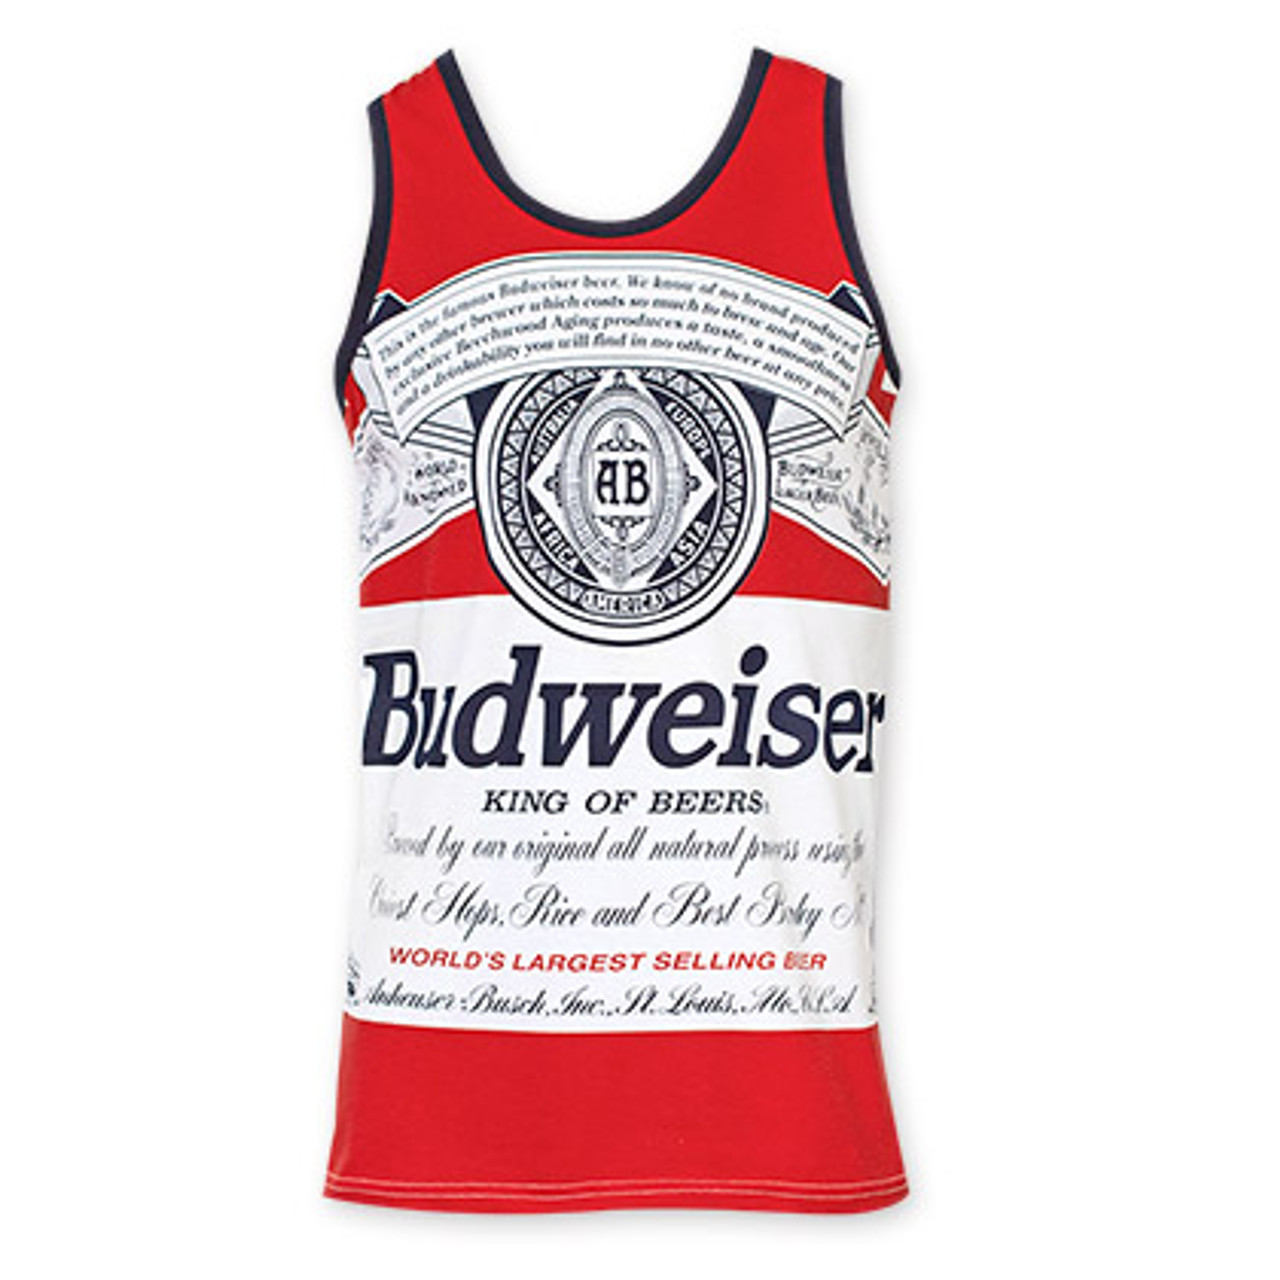 53bc5b49479db Budweiser Men's Red Bottle Label Tank Top - Quality Liquor Store